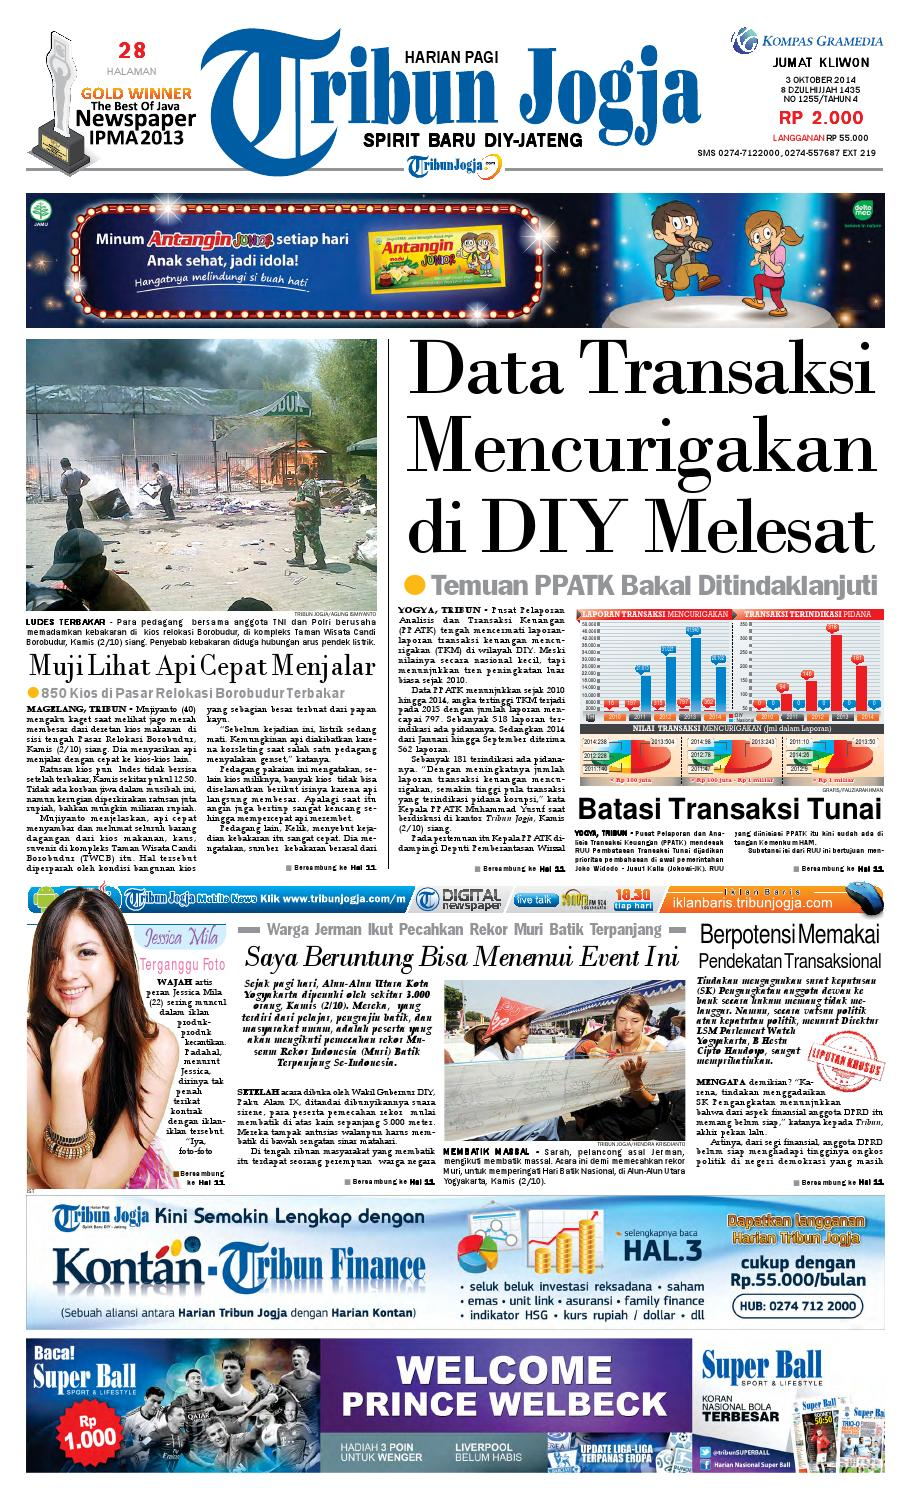 Tribunjogja 03 10 2014 By Tribun Jogja Issuu Produk Ukm Bumn Permen Tape Ladida